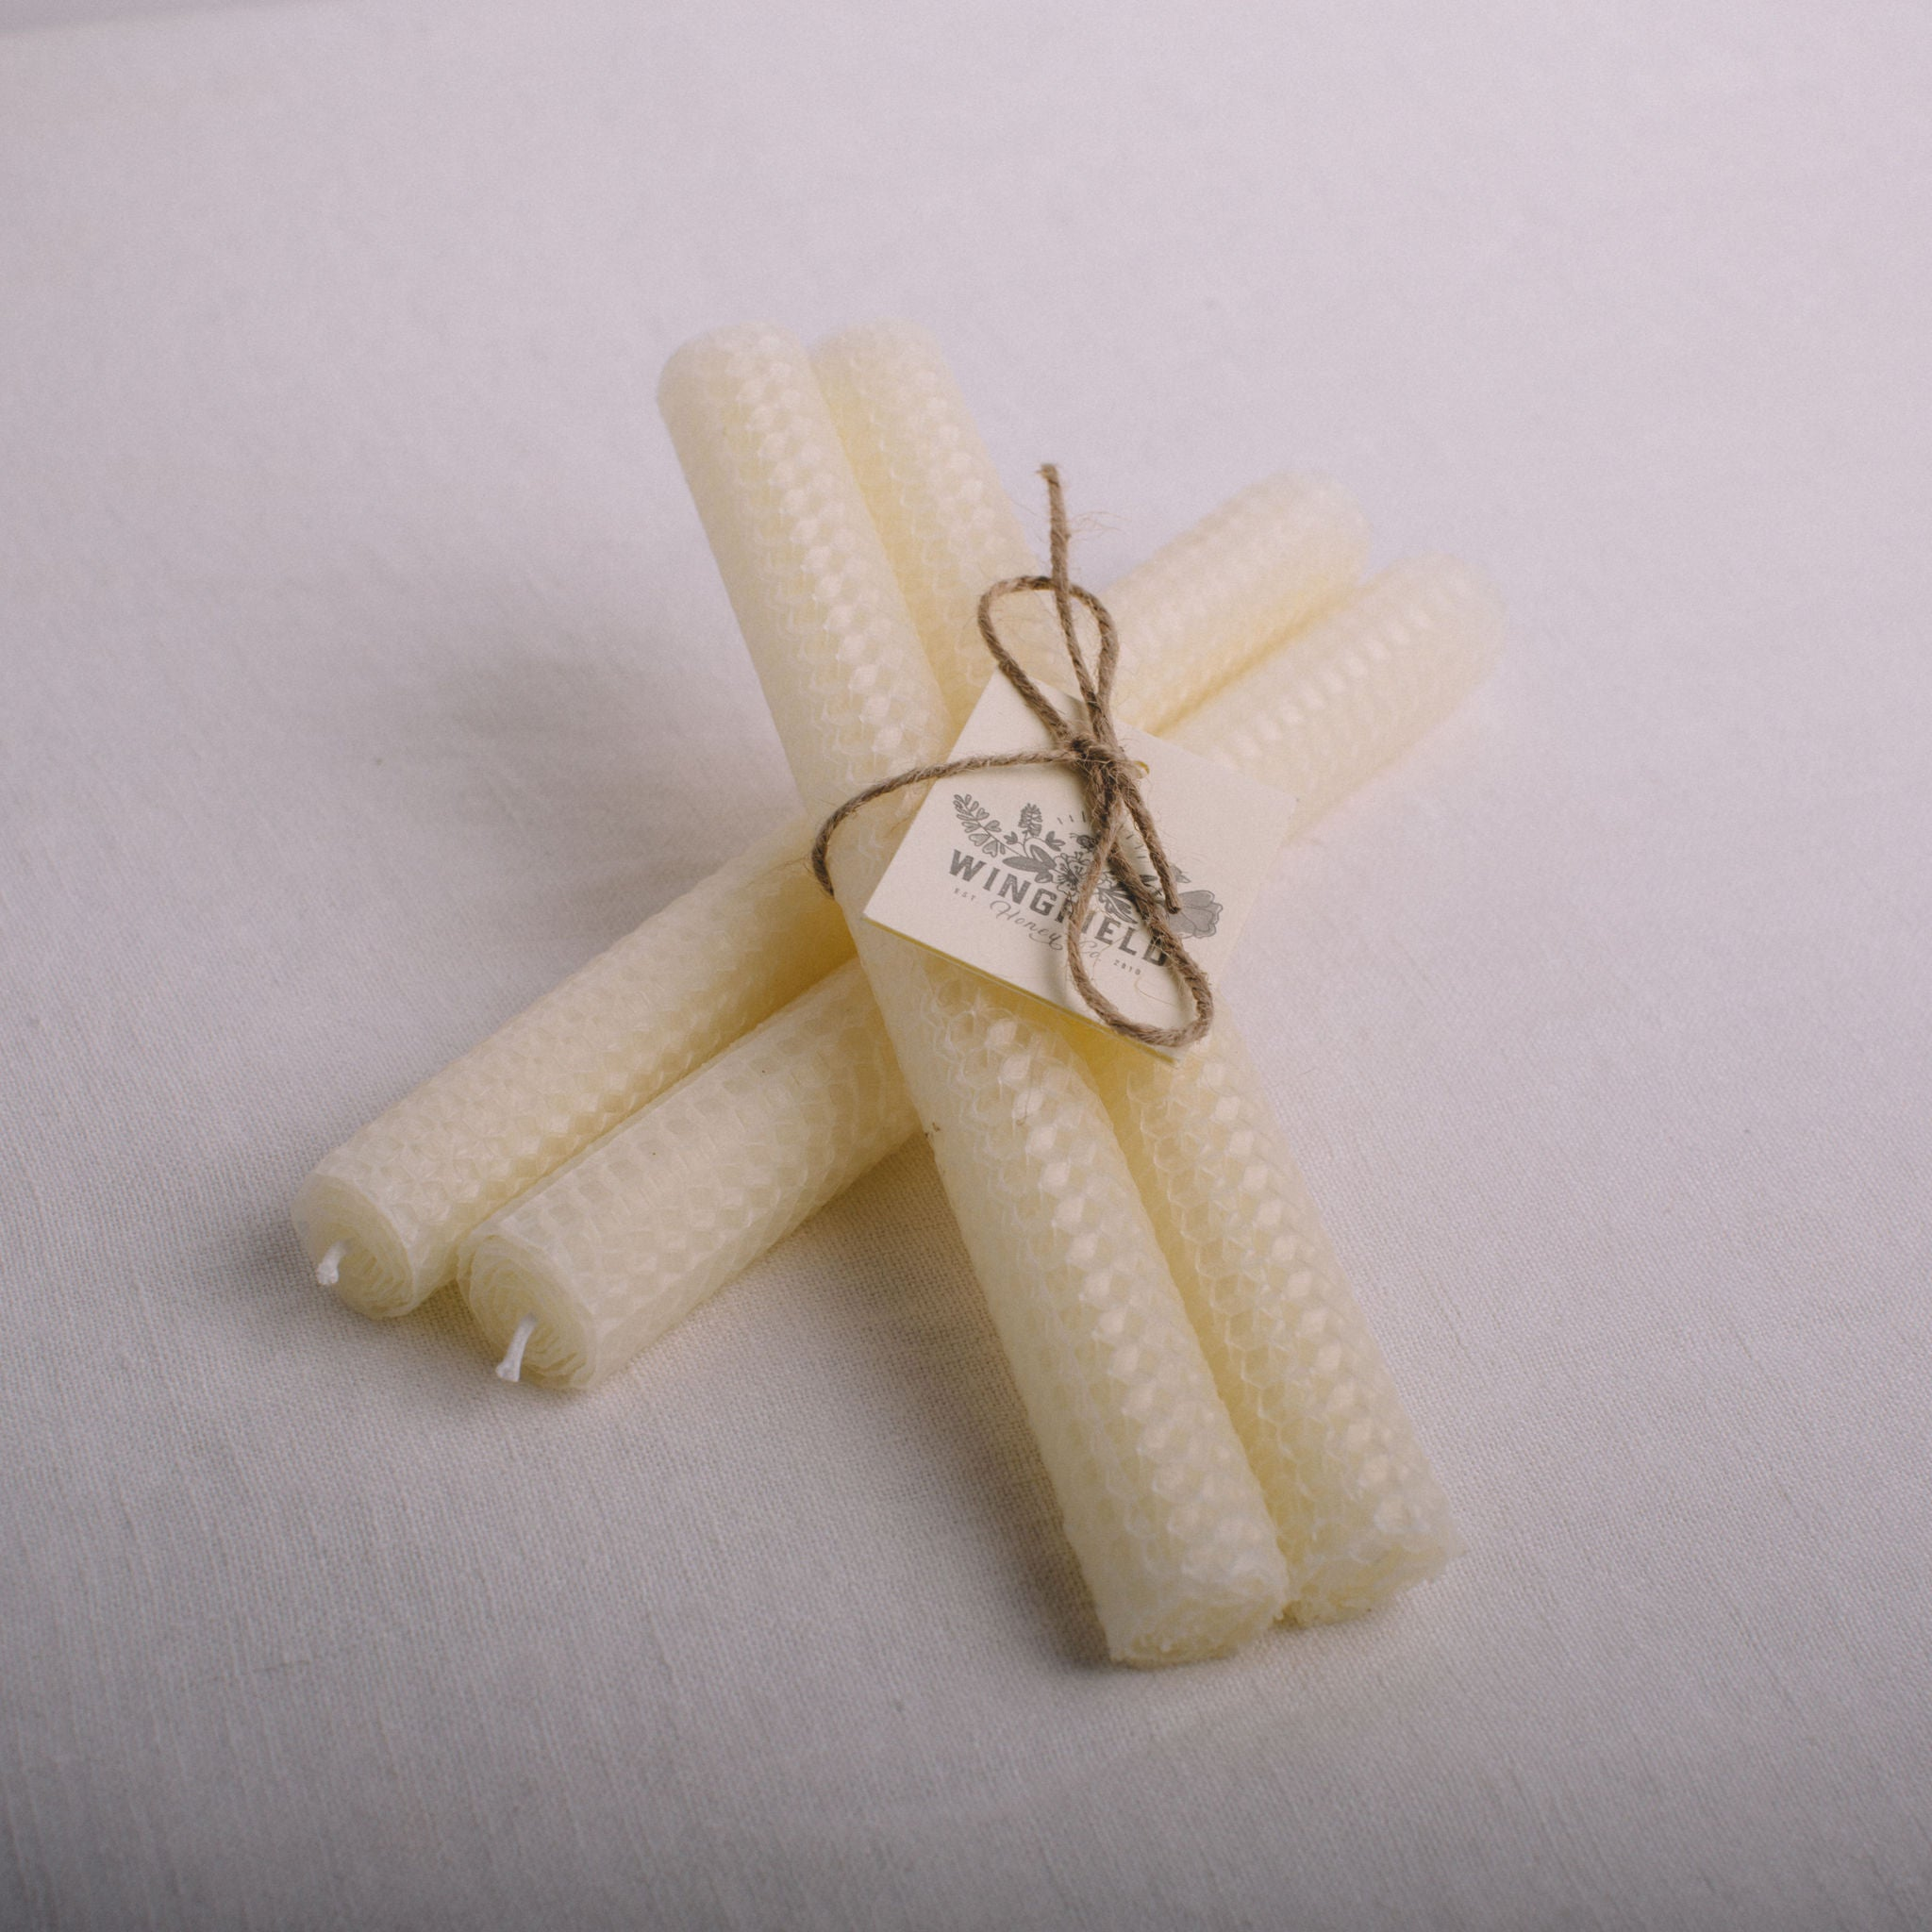 WINGFIELD HONEY CO. || BEESWAX CANDLES